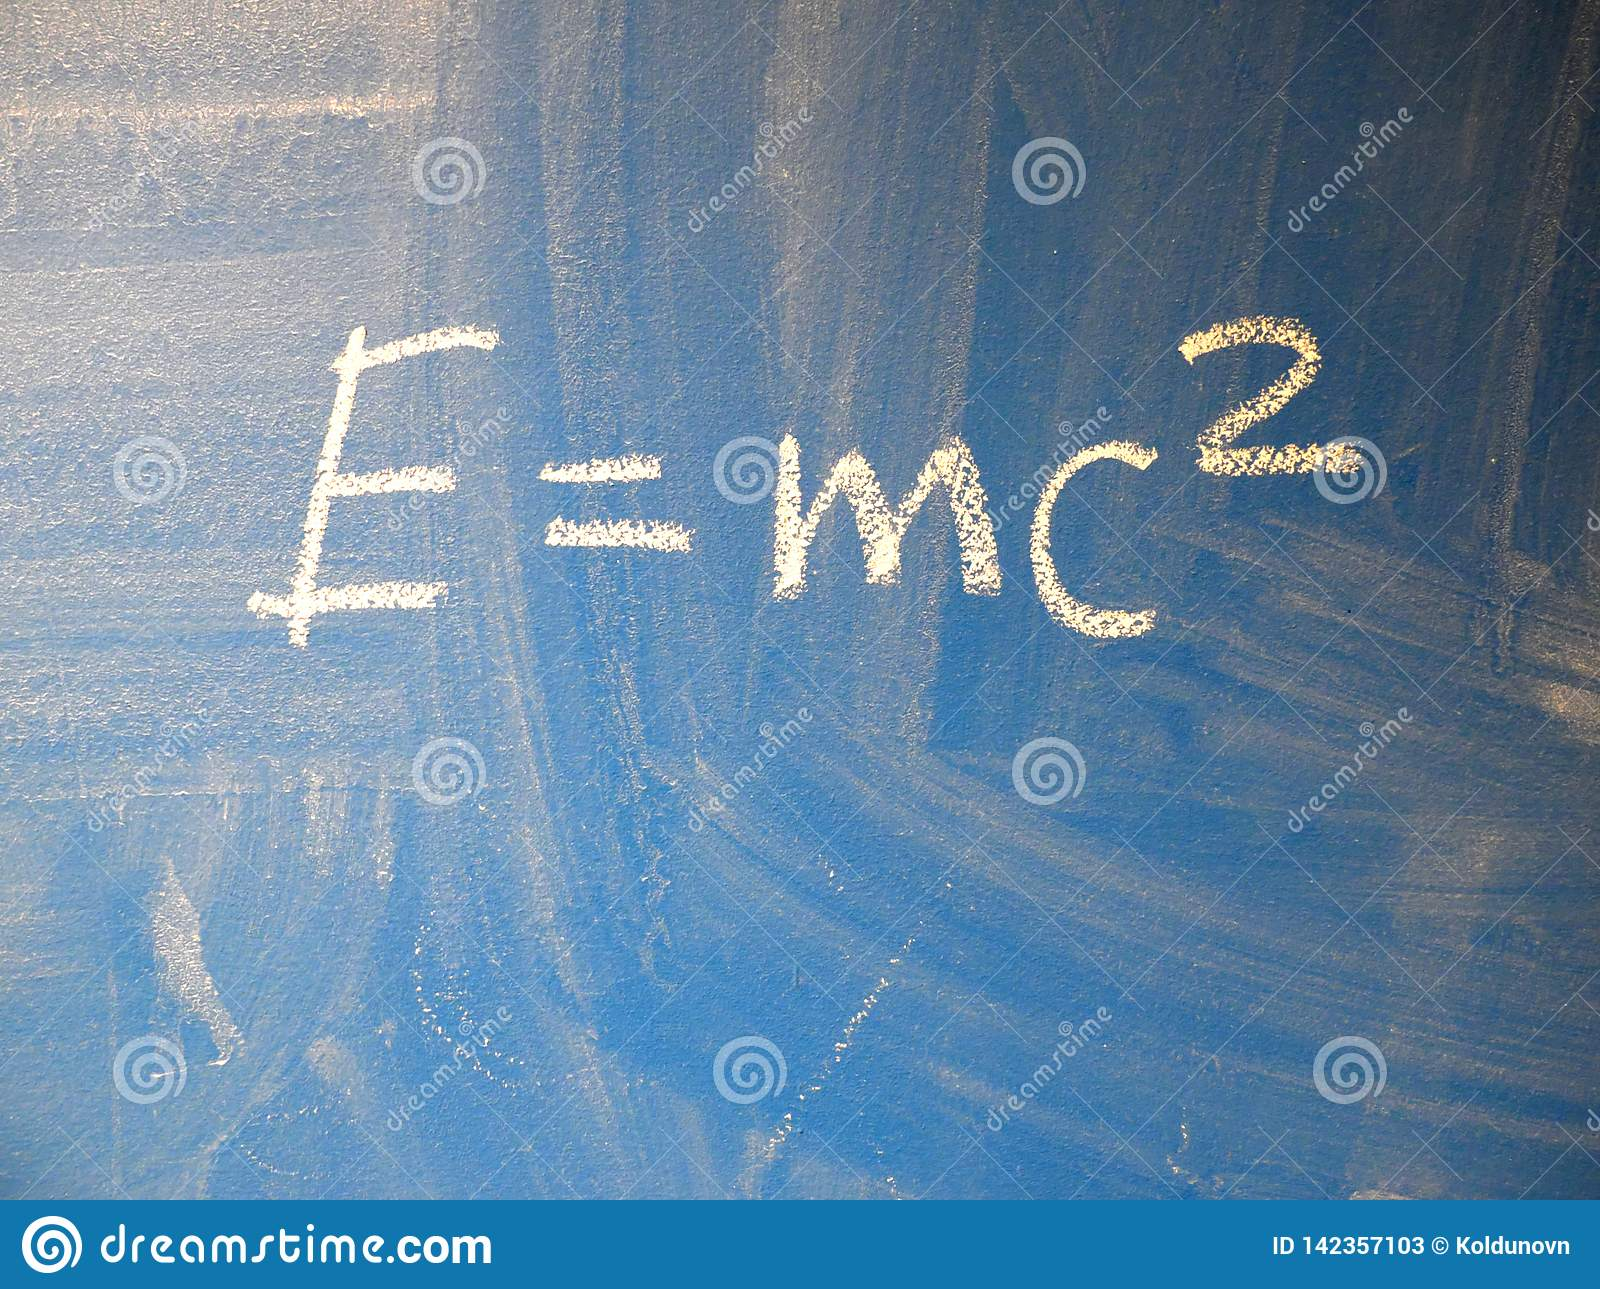 Mathematical formula e=mc2 squared written on a blue, relatively dirty chalkboard by chalk